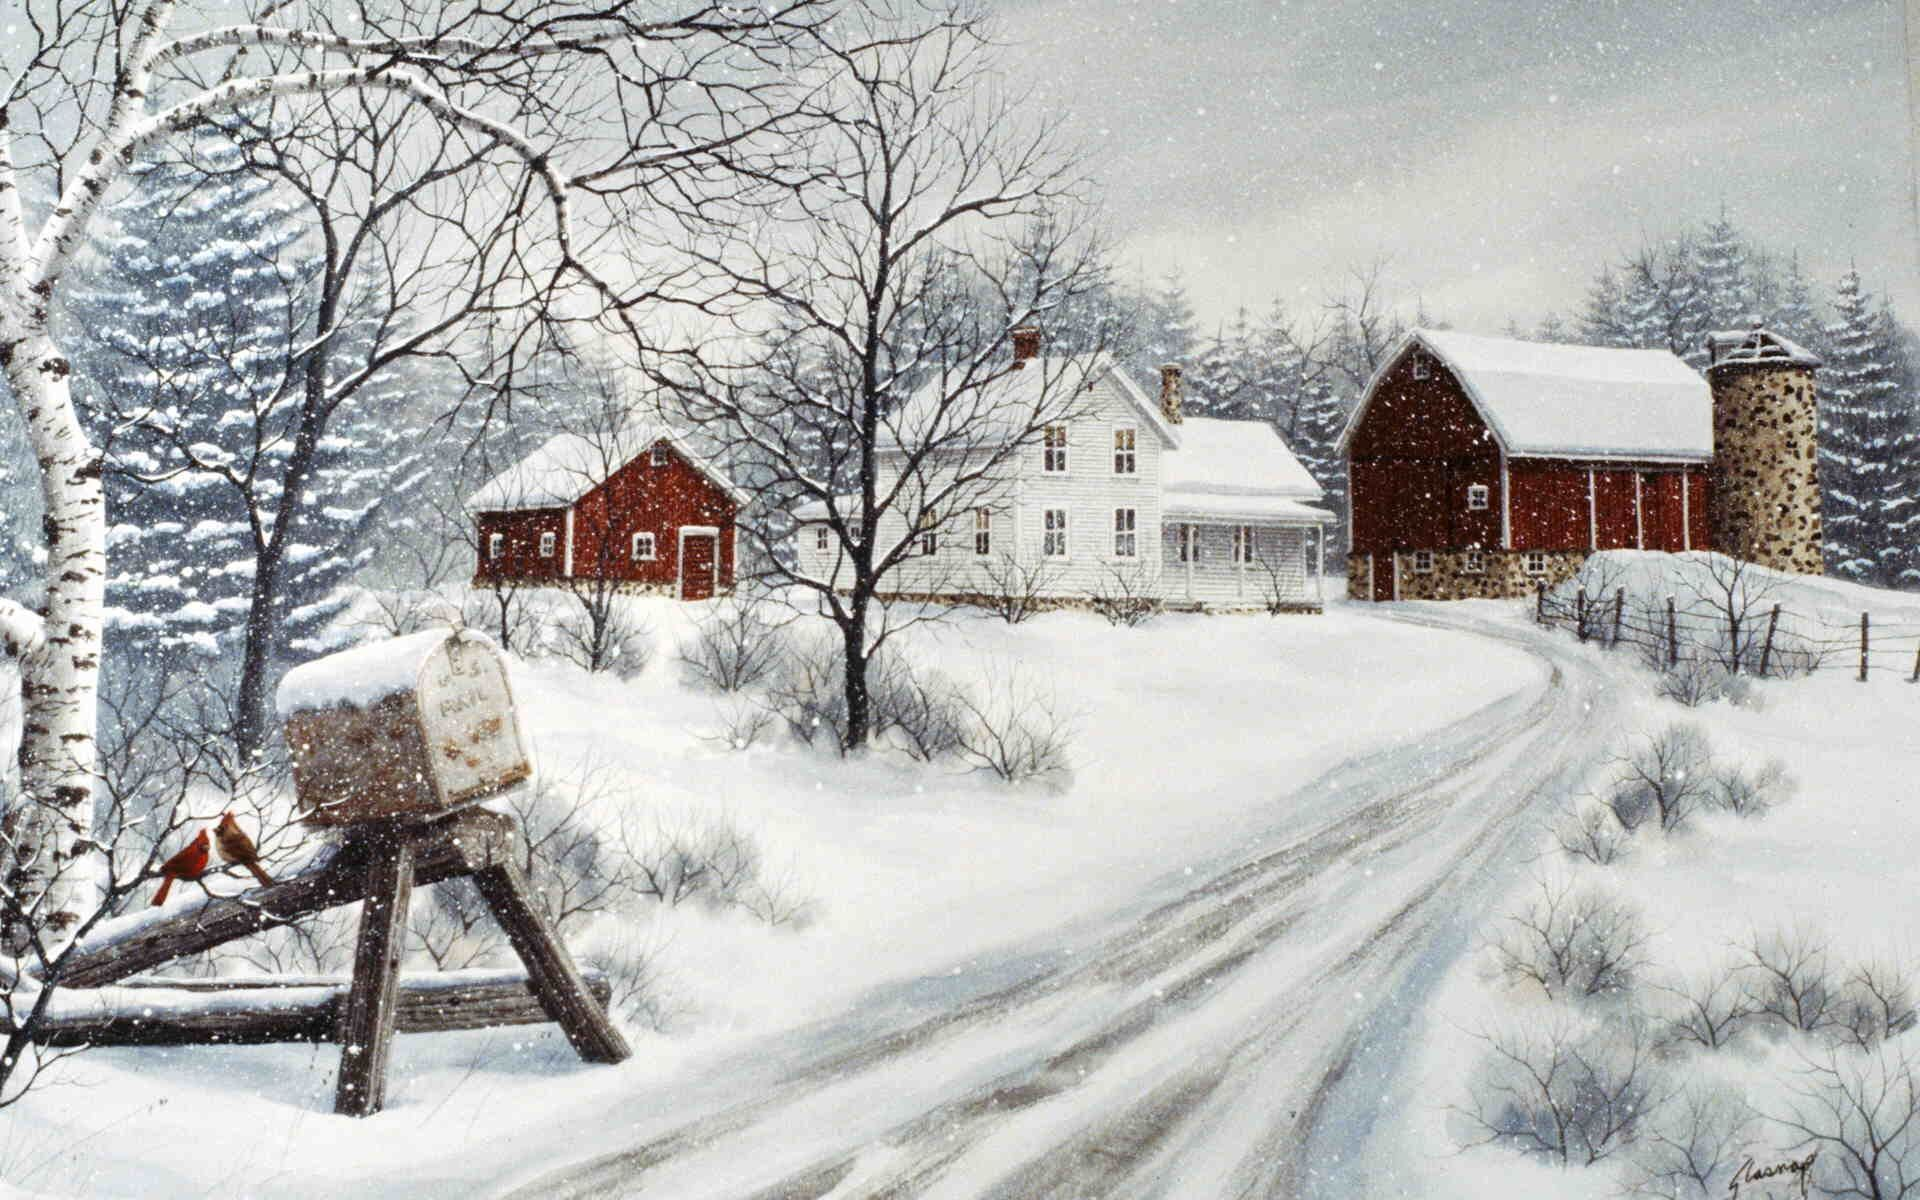 Winter on the Farm Kathy Glasnap Winter scenery